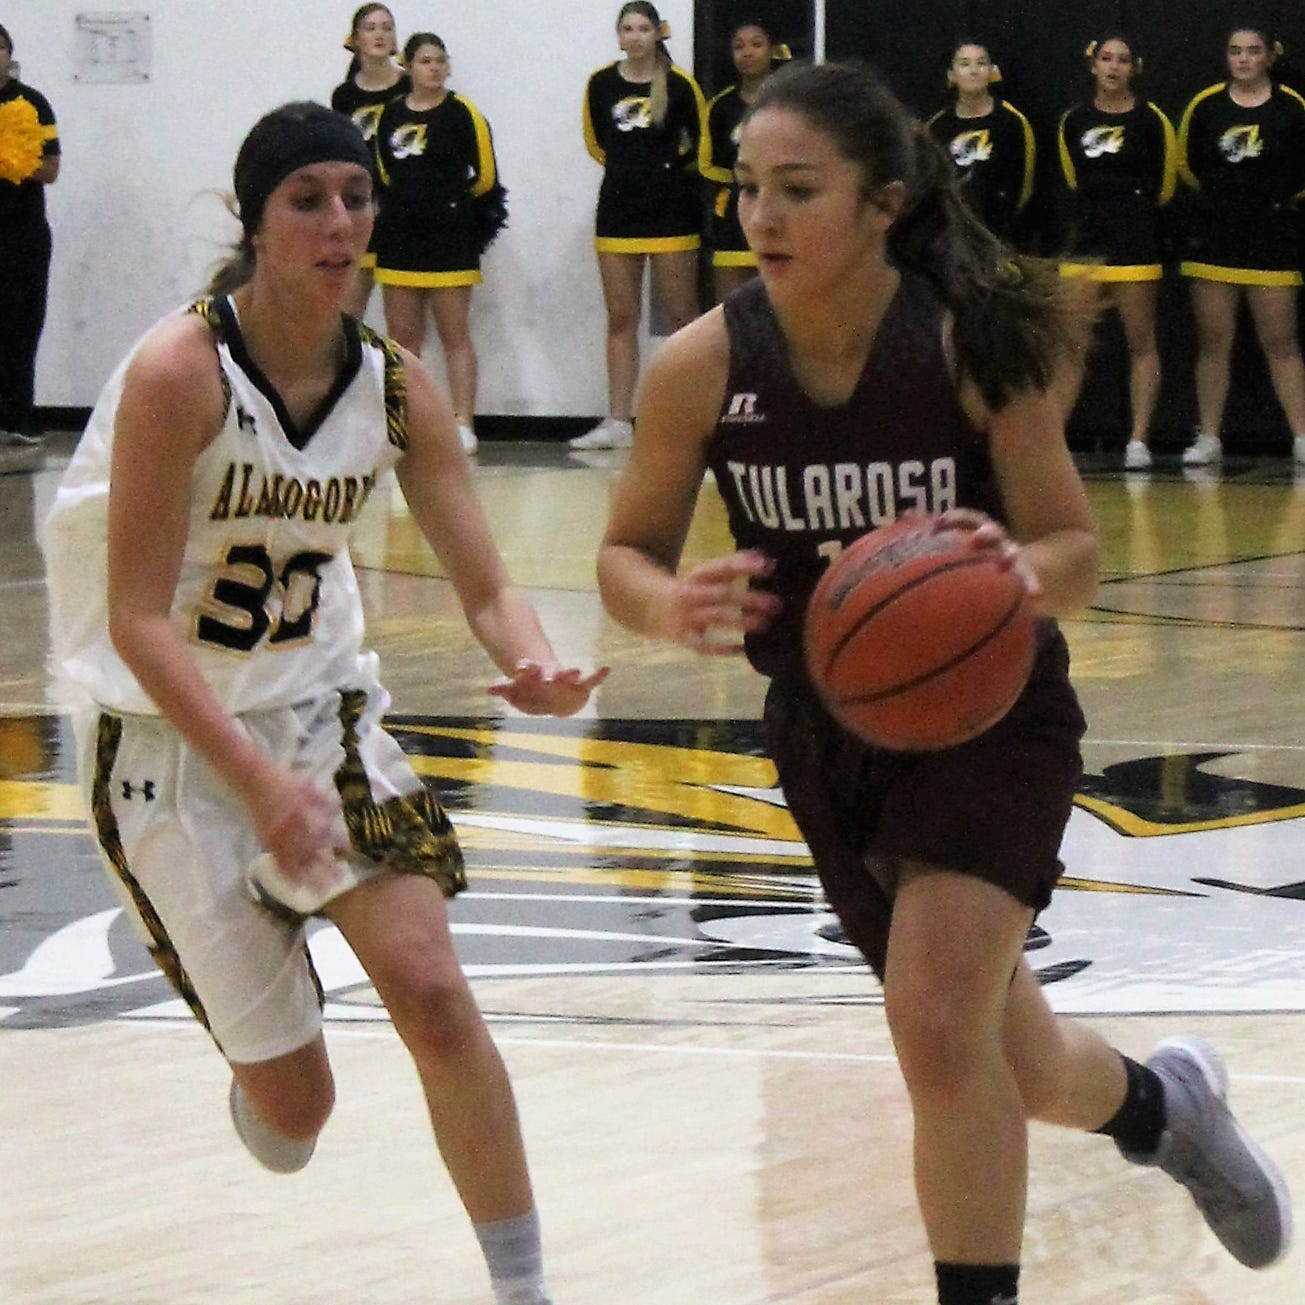 Lady Tigers pounced the Lady Wildcats 67-21 Tuesday